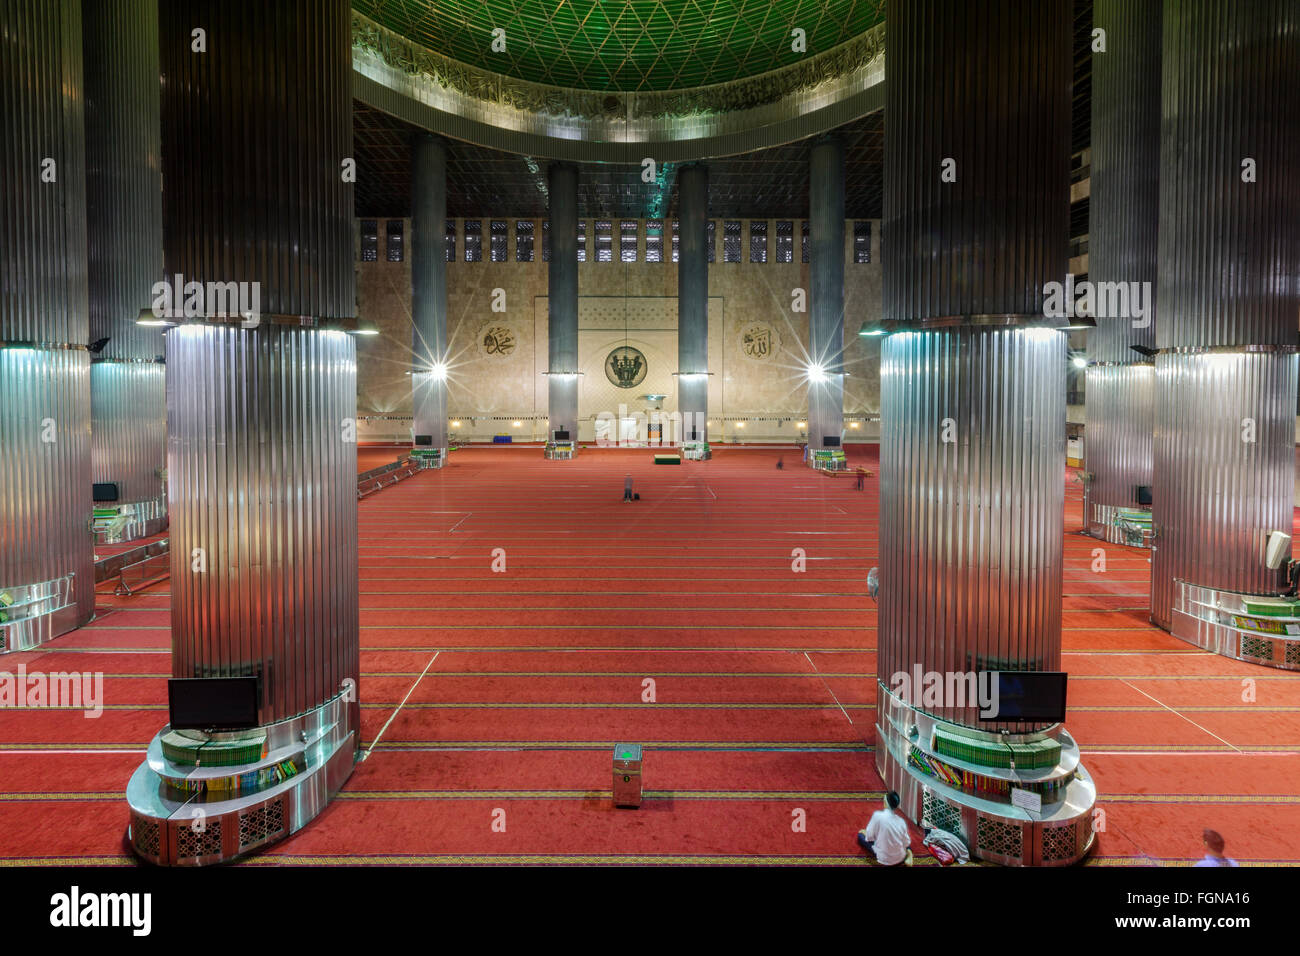 Interior of the prayer hall of the Istiqlal Mosque, or Masjid Istiqlal, in Jakarta - the largest mosque in Southeast - Stock Image